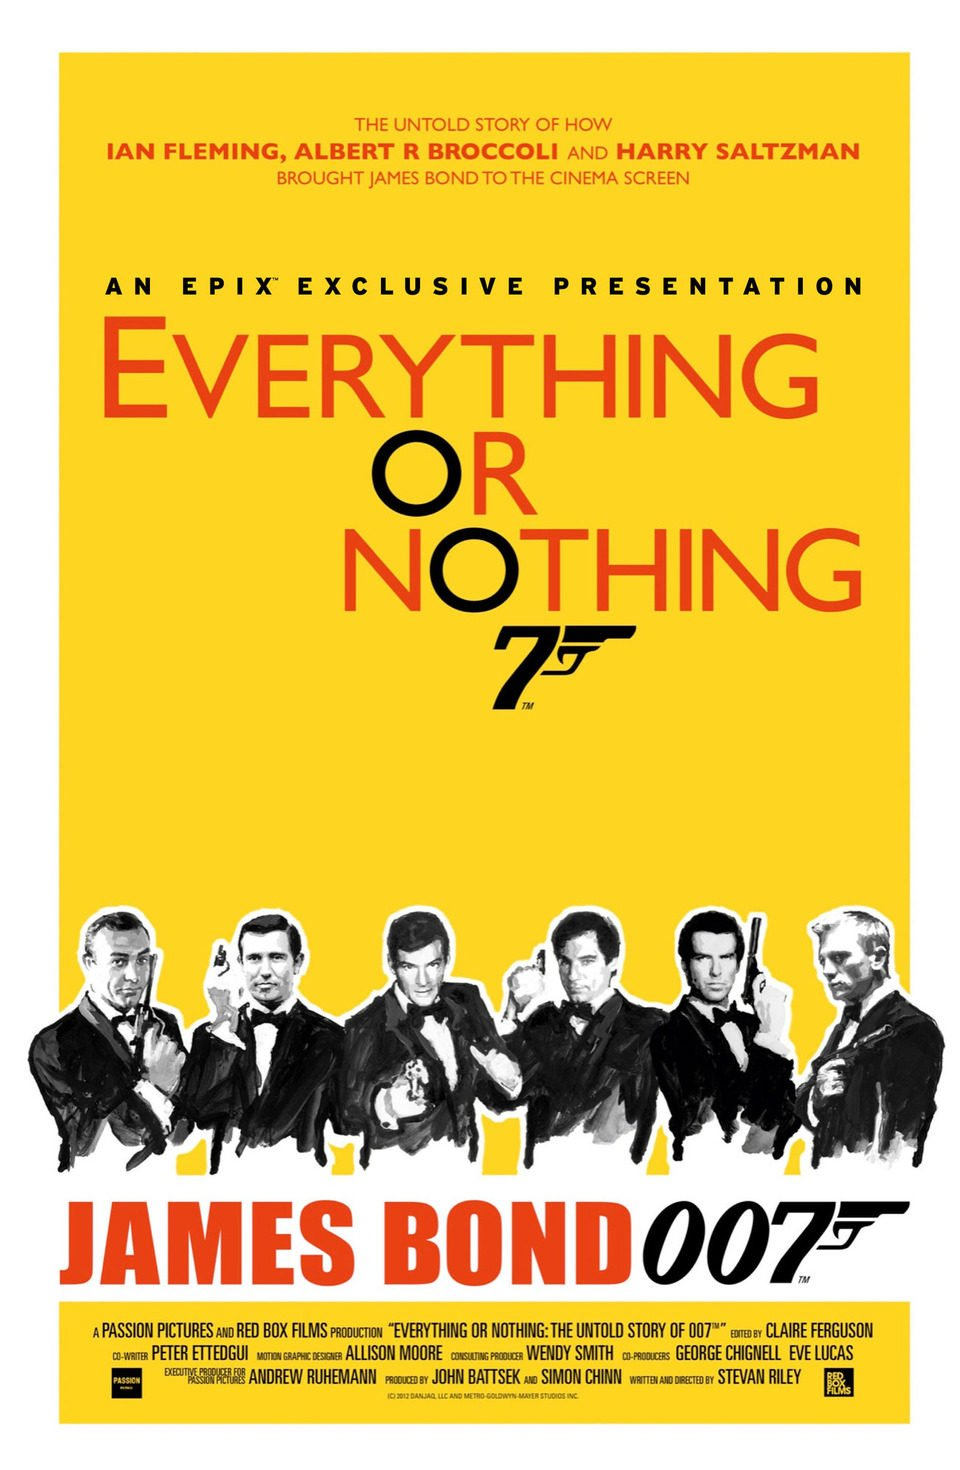 Cartel Reino Unido de 'Everything or Nothing: The Untold Story of 007'